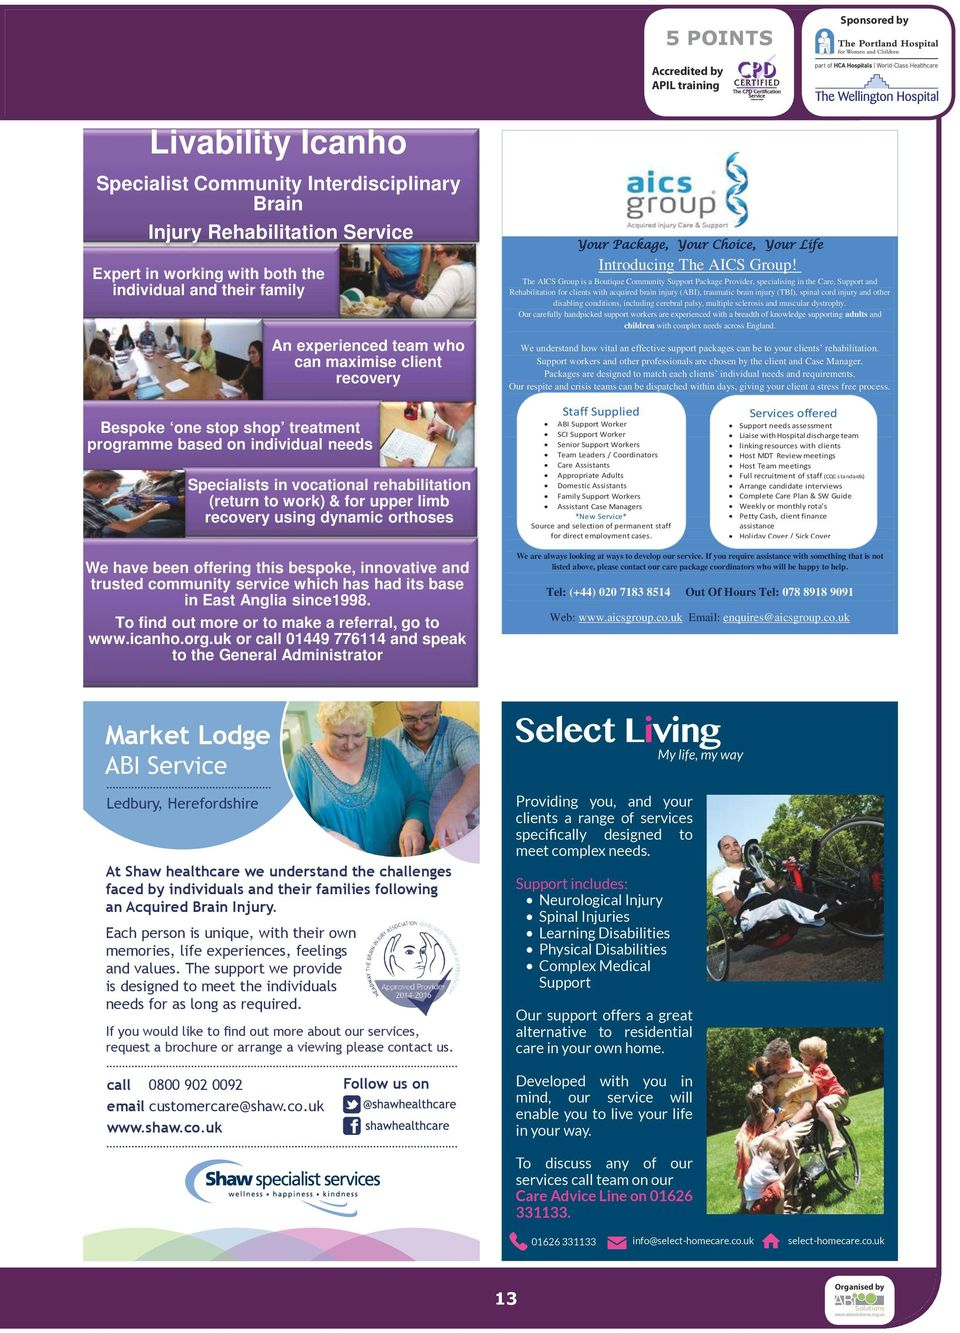 The AICS Group is a Boutique Community Support Package Provider, specialising in the Care, Support and Rehabilitation for clients with acquired brain injury (ABI), traumatic brain injury (TBI),